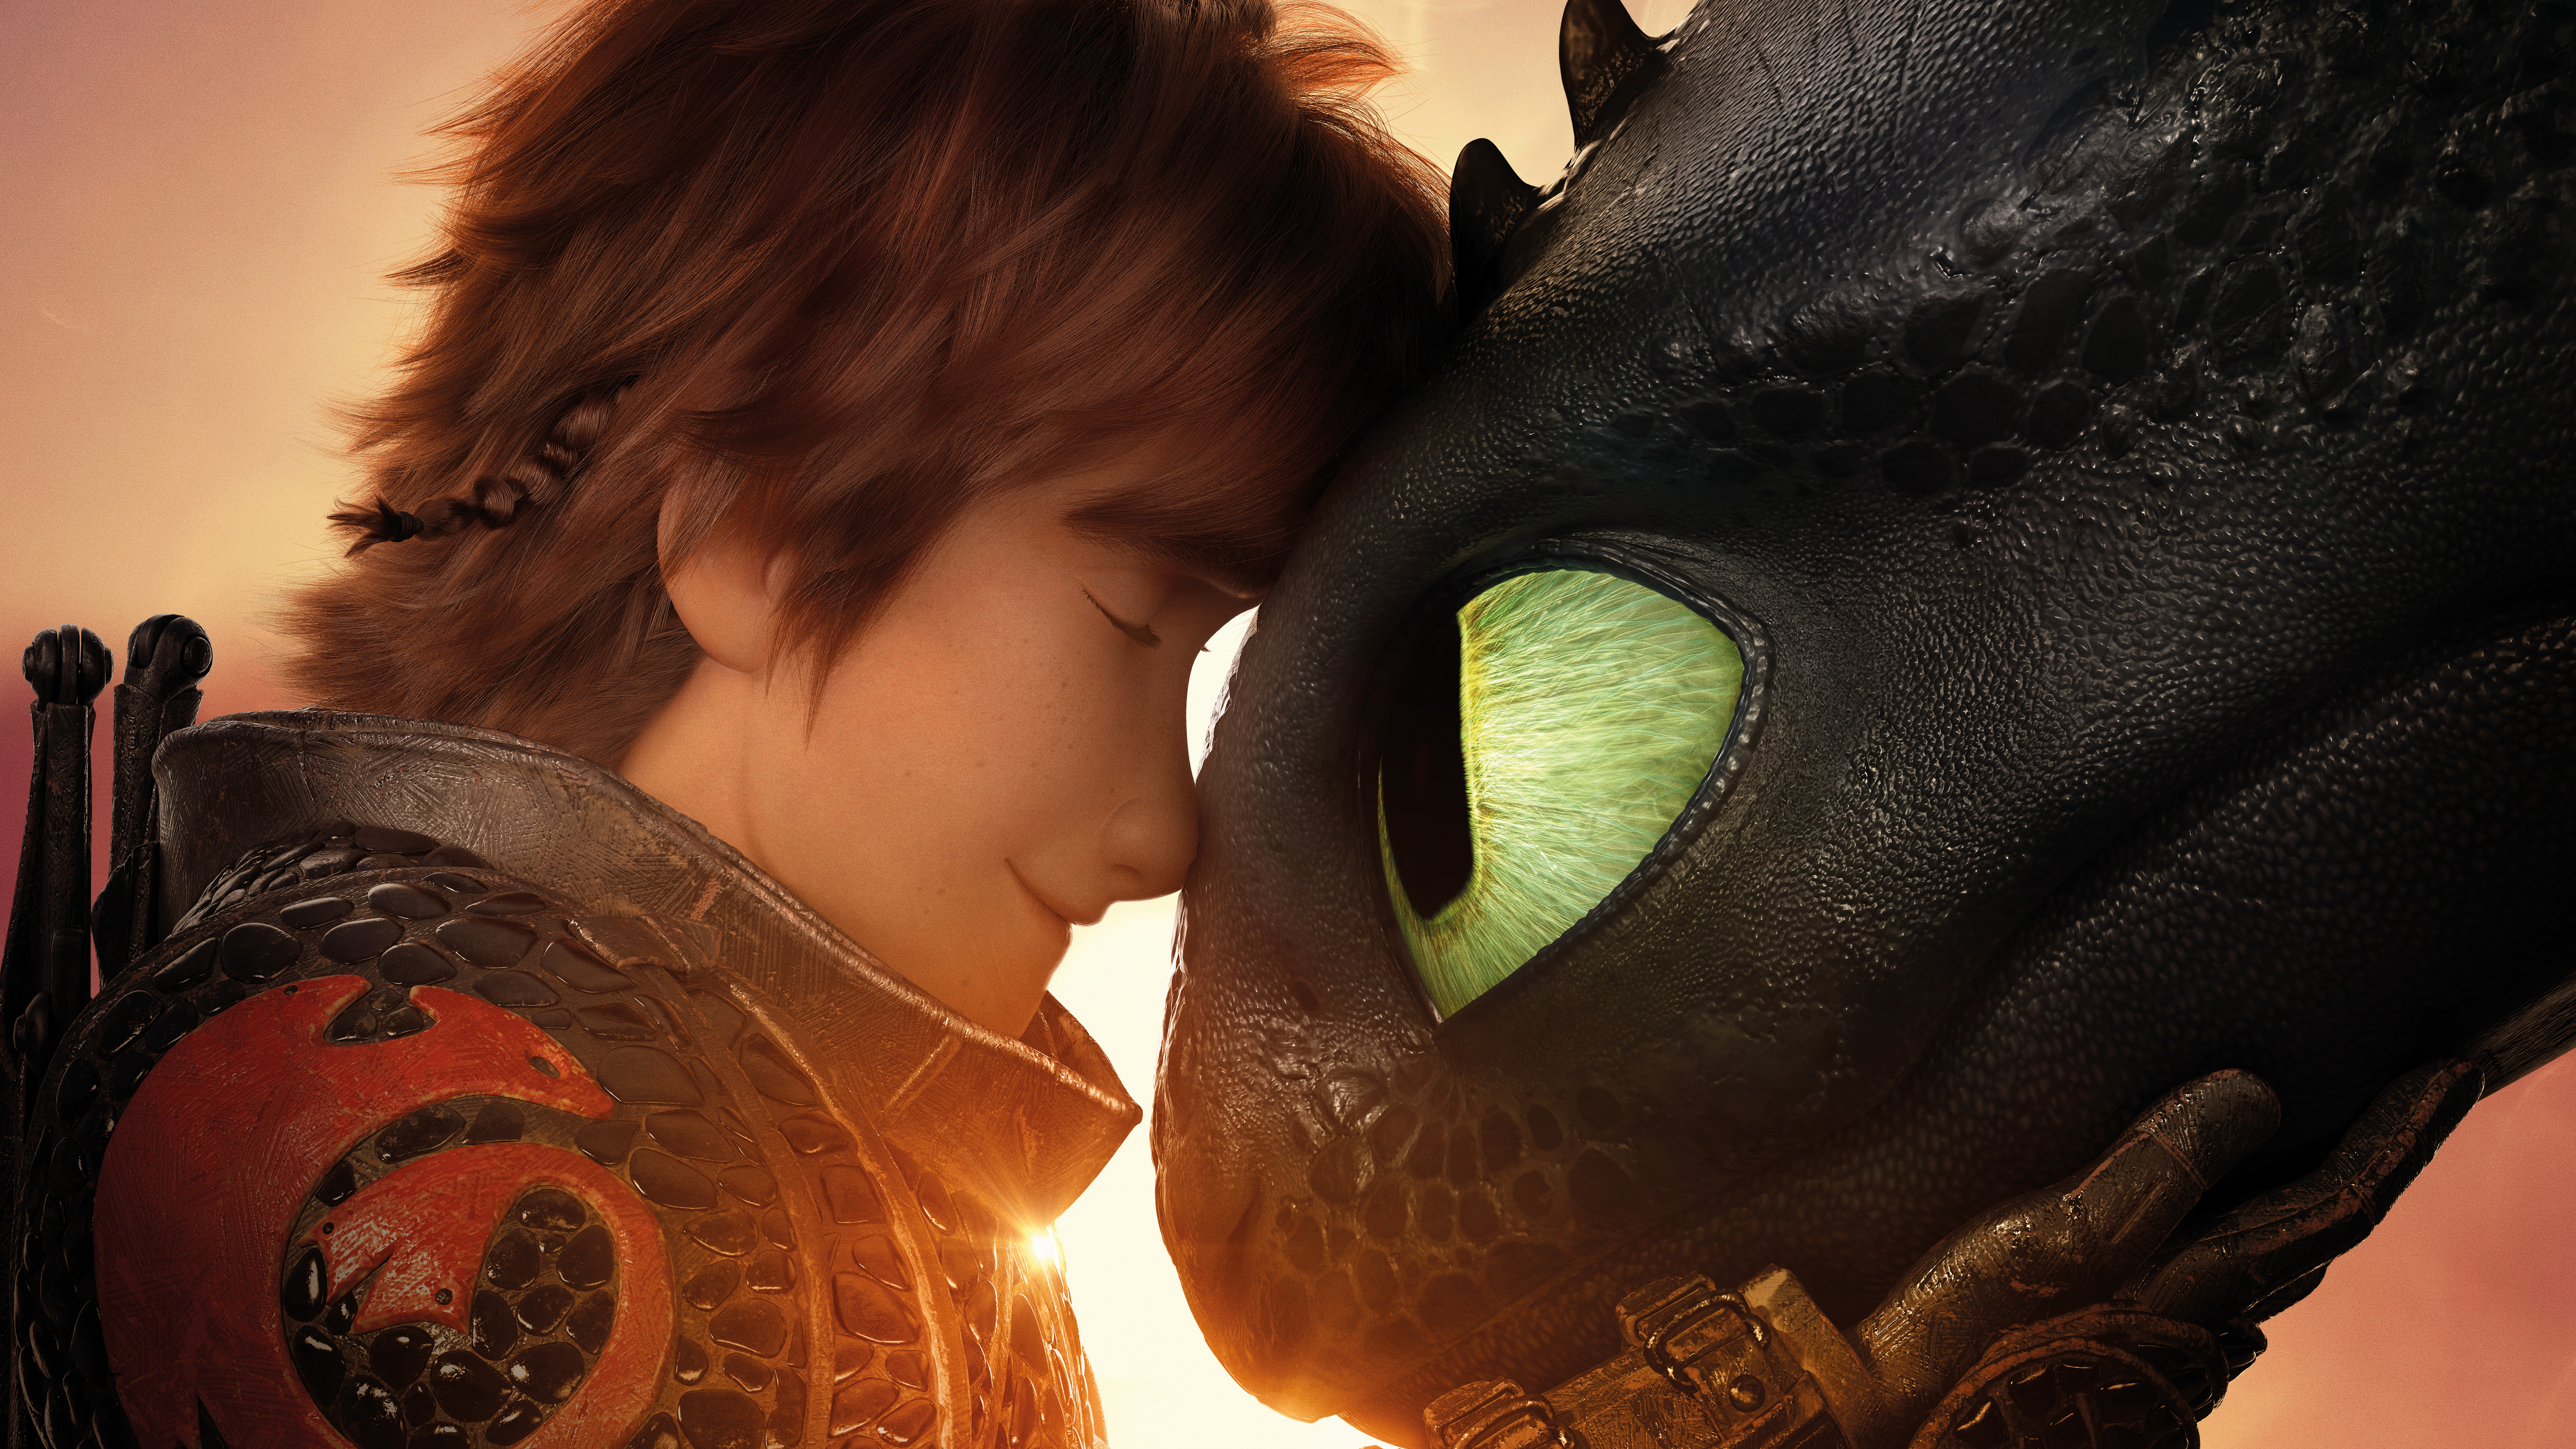 How To Train Your Dragon The Hidden World 8k Ultra Hd Wallpaper